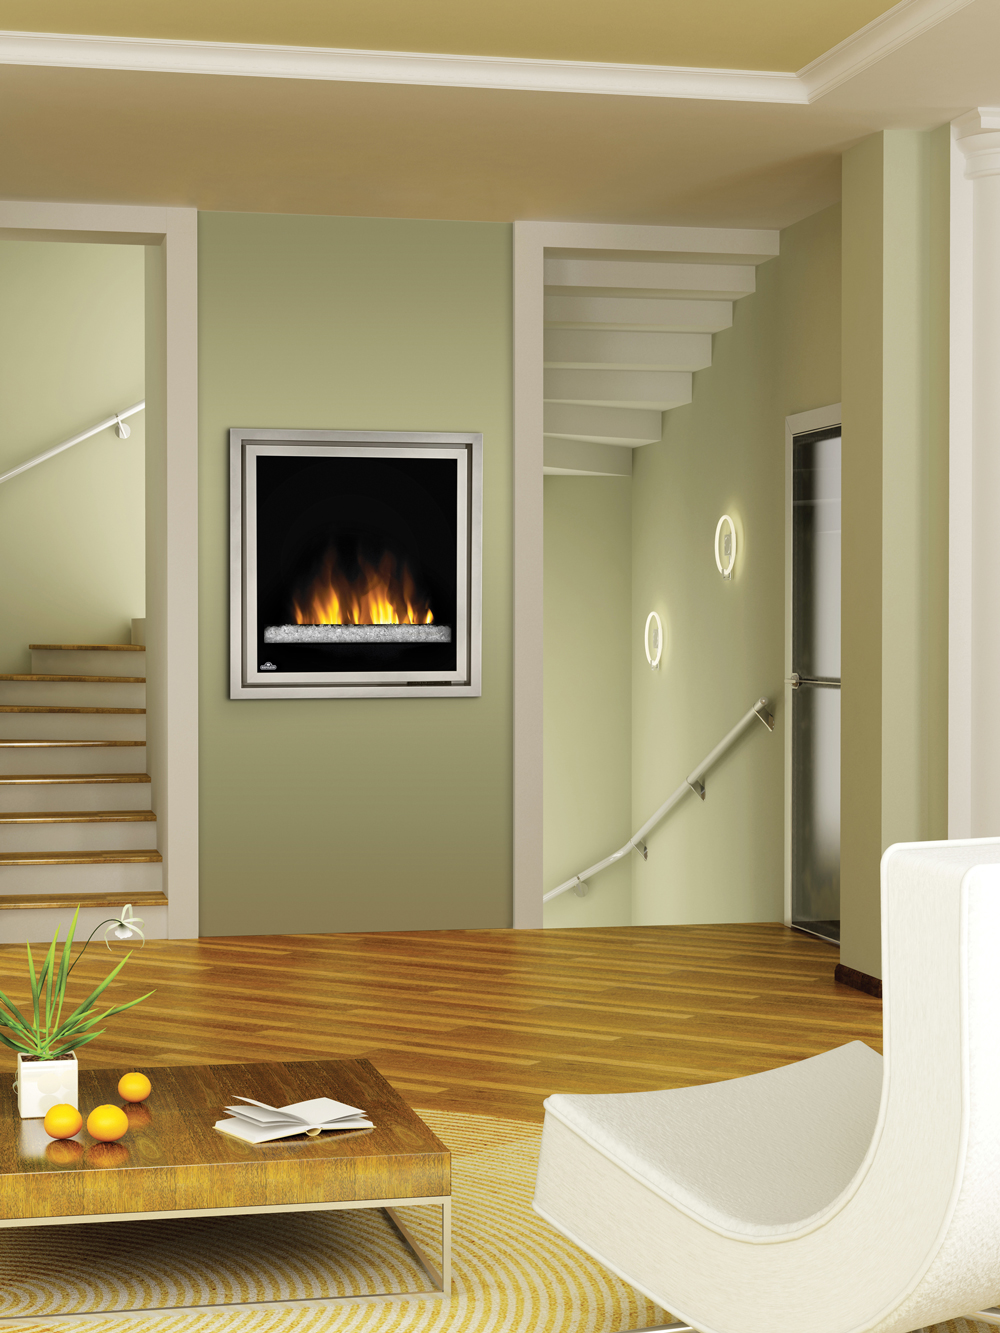 Napoleon 30 in plug in electric fireplace insert w glass for Floor and decor california